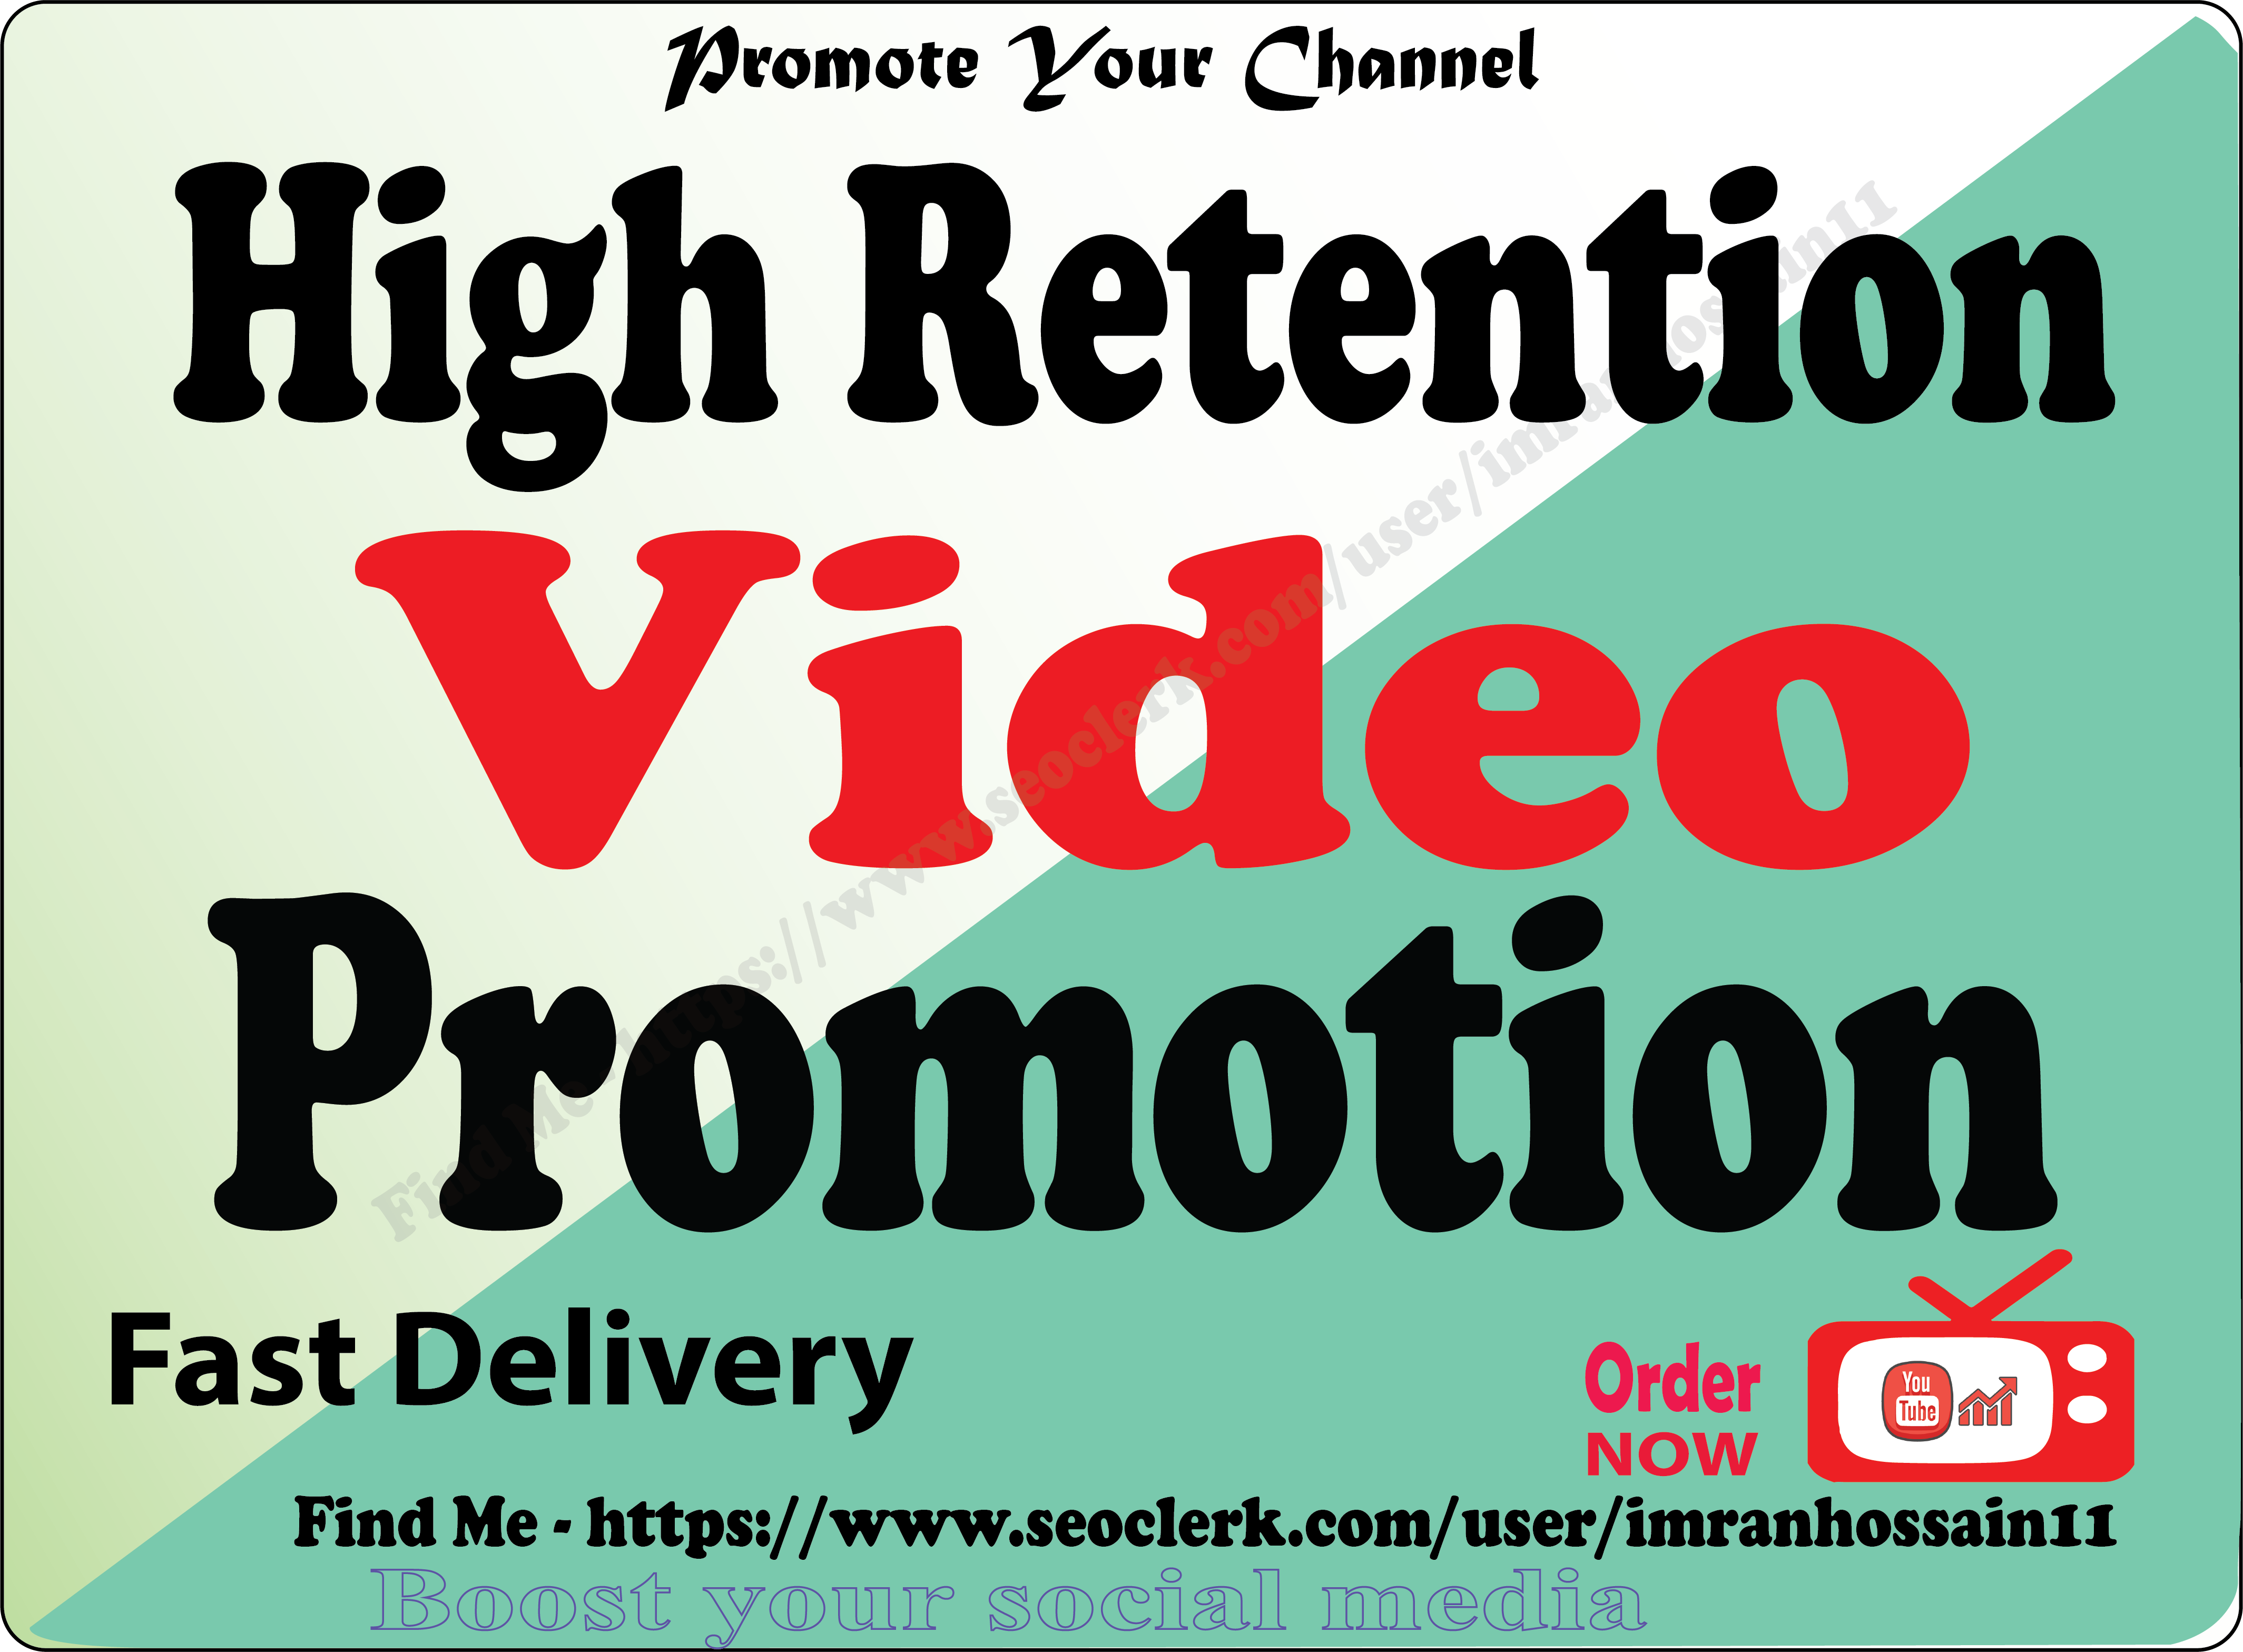 Instant Start Organic Youtube Video Marketing legal way follow YouTube TOS